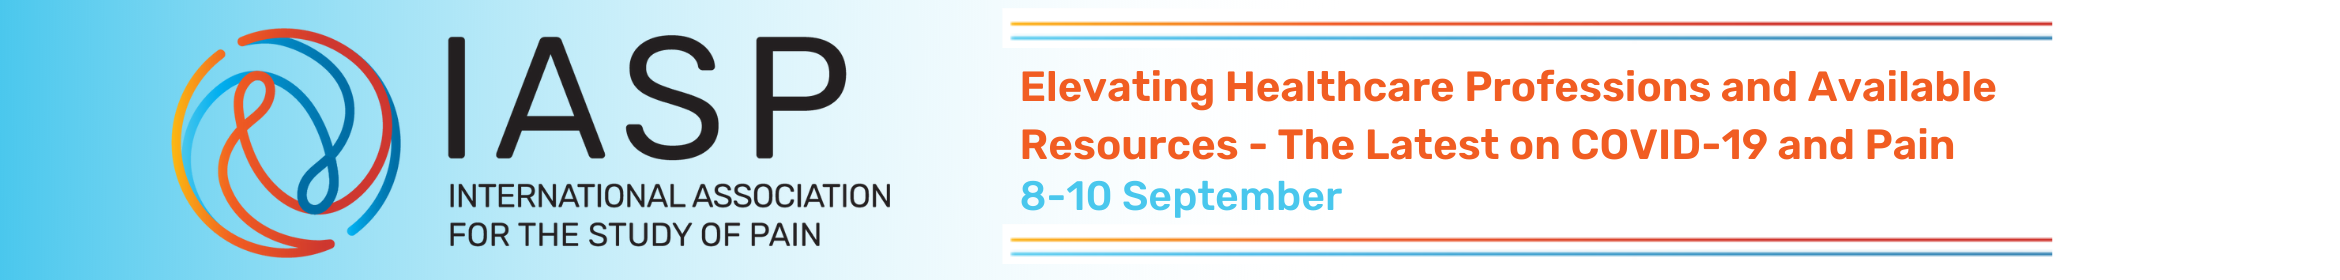 Elevating Healthcare Professionals and Available Resources - The Latest on COVID 19 and Pain Main banner